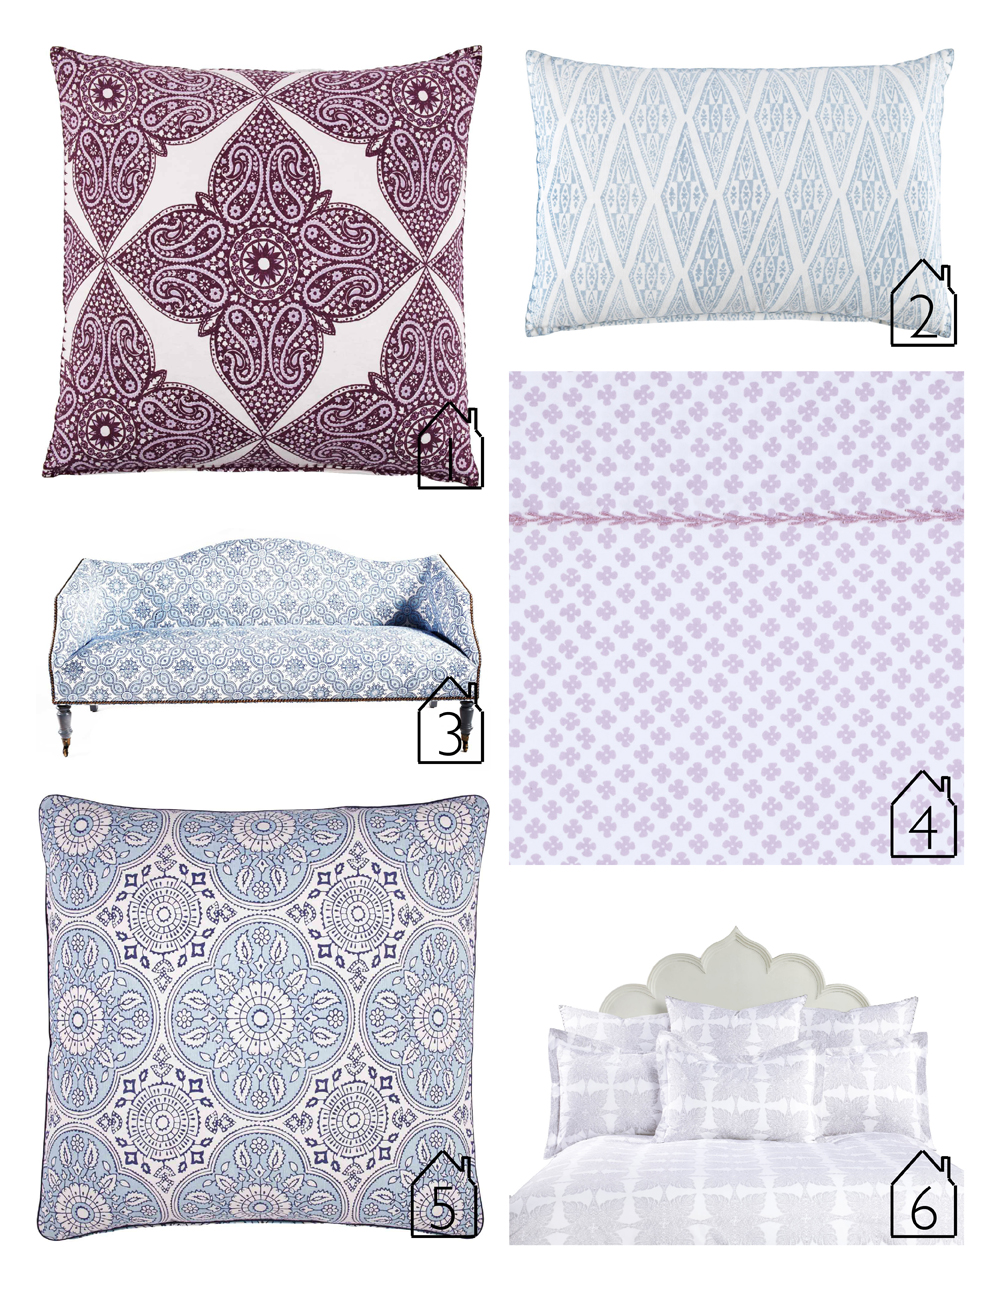 1. Kumera Brinjal Euro pillow  2. North Sea Dec pillow  3. Luxor Settee  4. Rabari Lavender sheet  5. Madura Lapis Euro pillow  6. Monsoon bedding